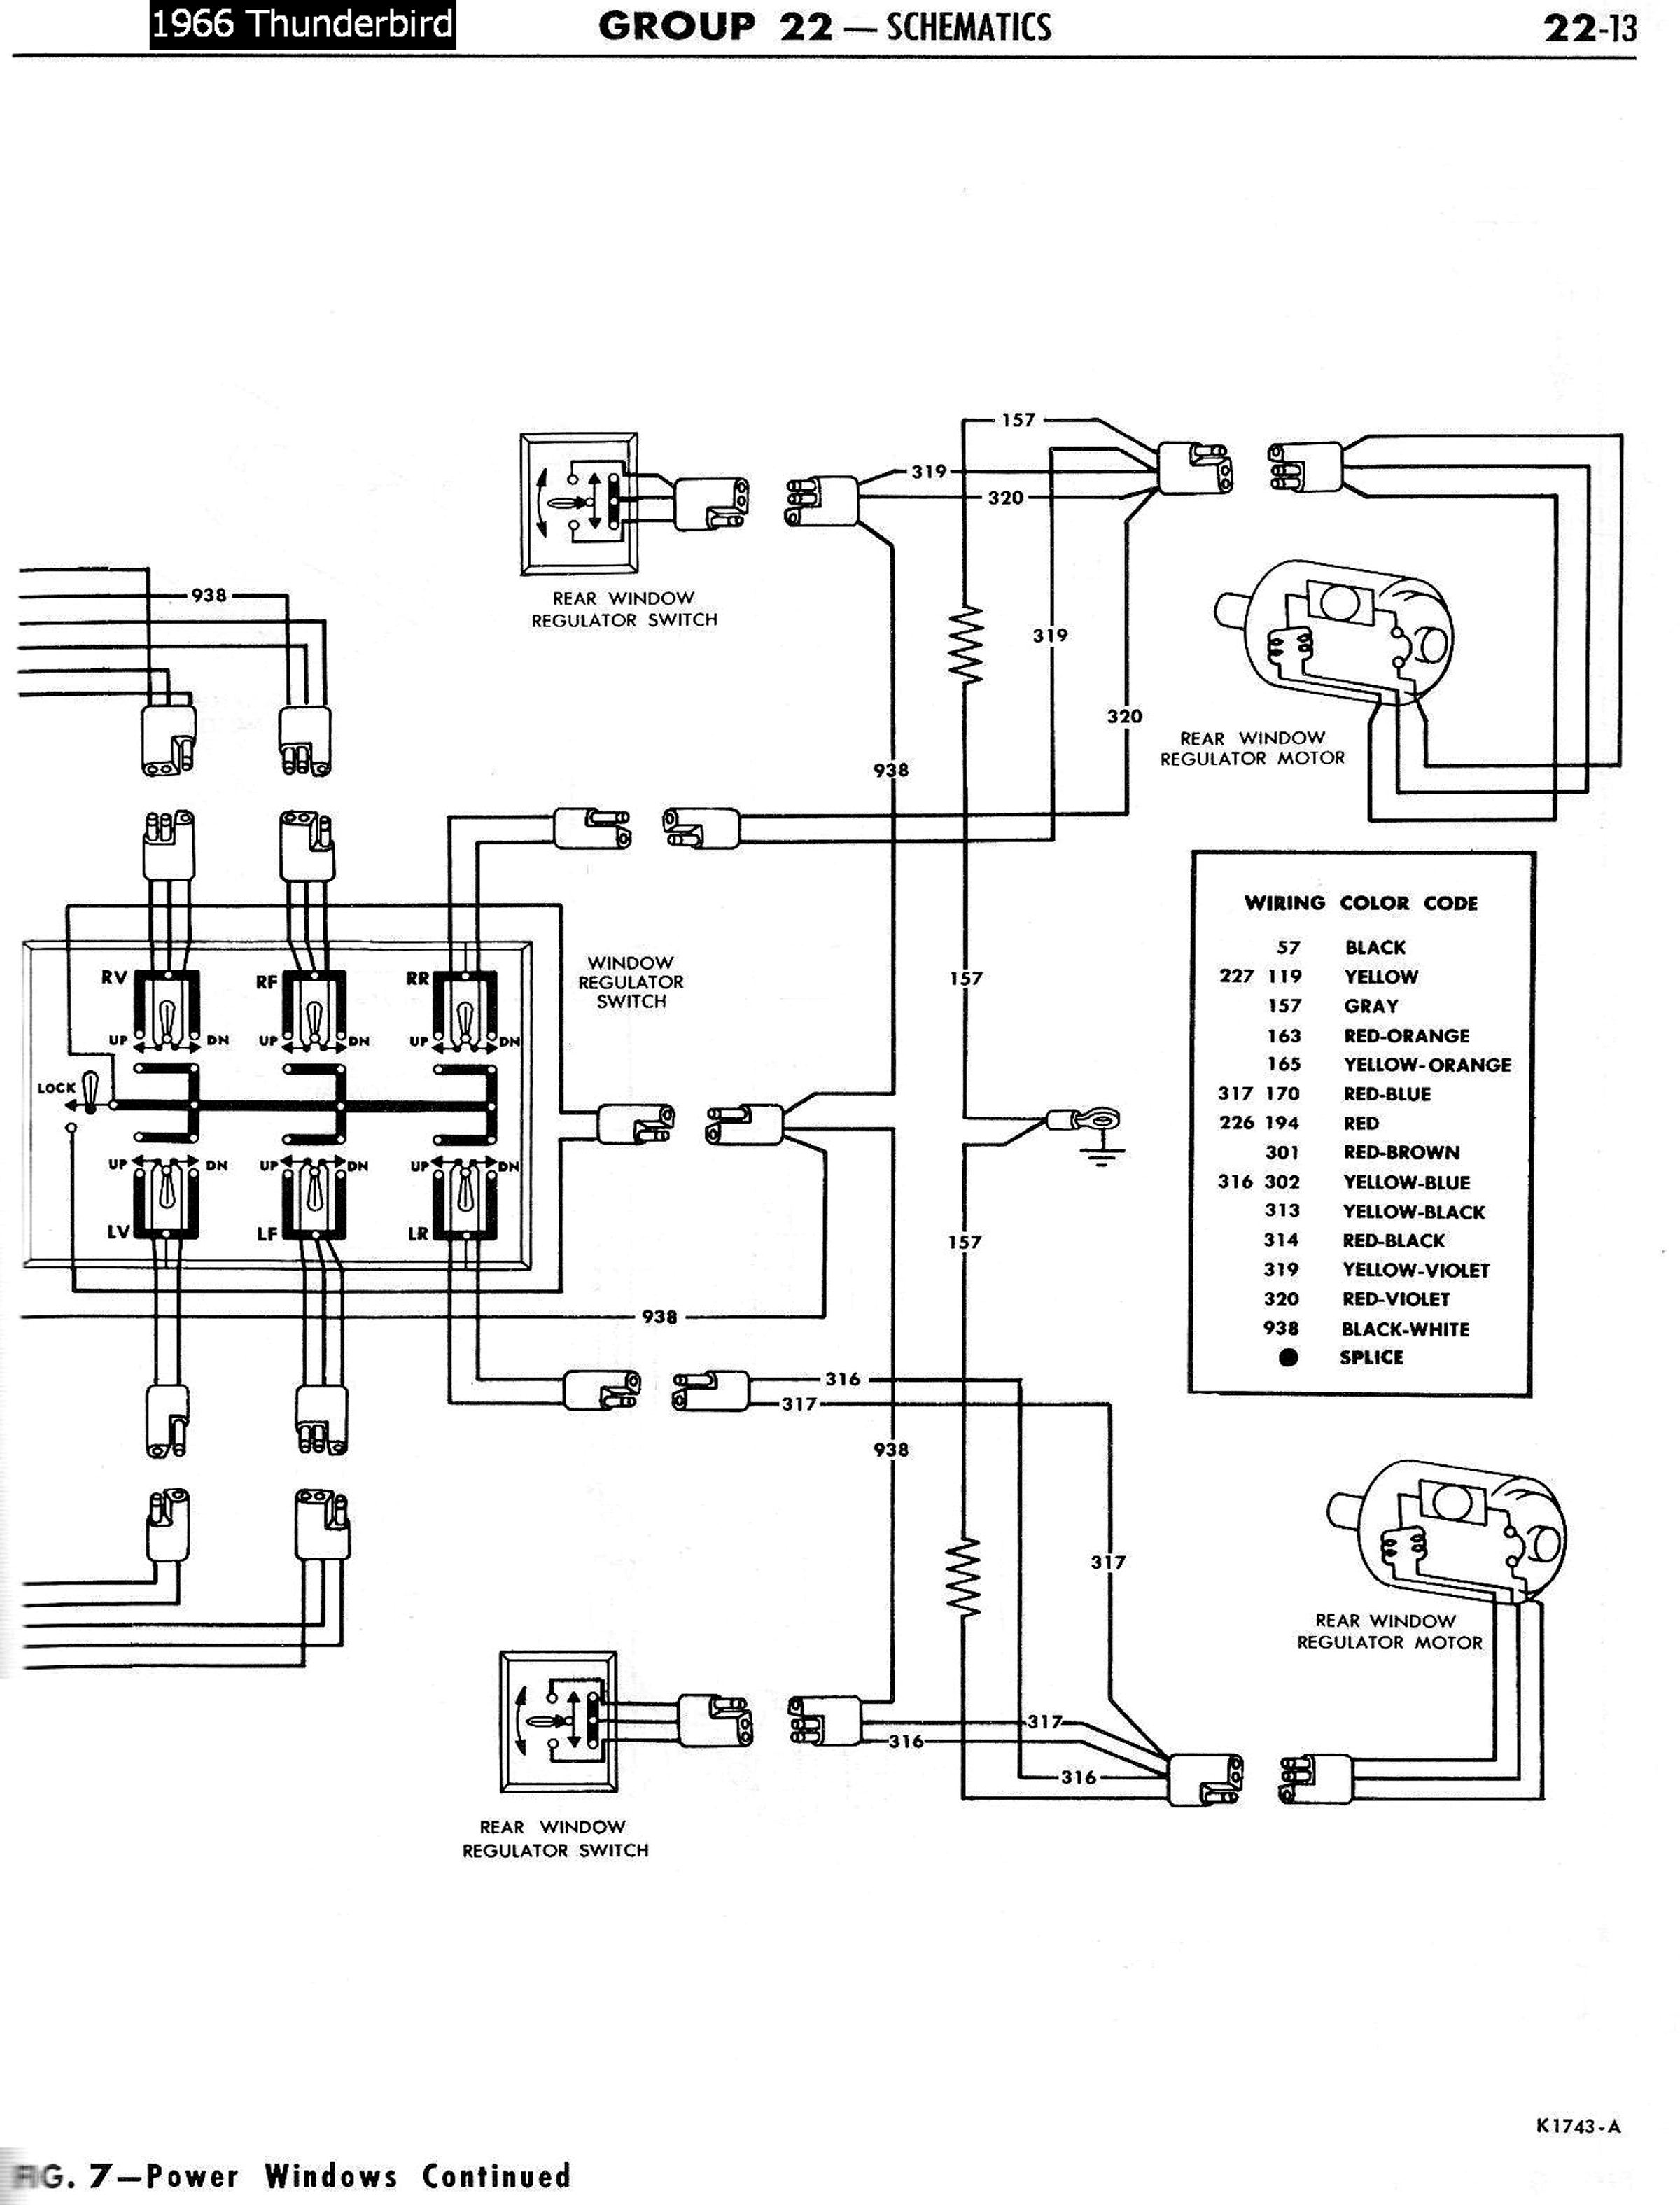 1965 ford thunderbird charging system schematic